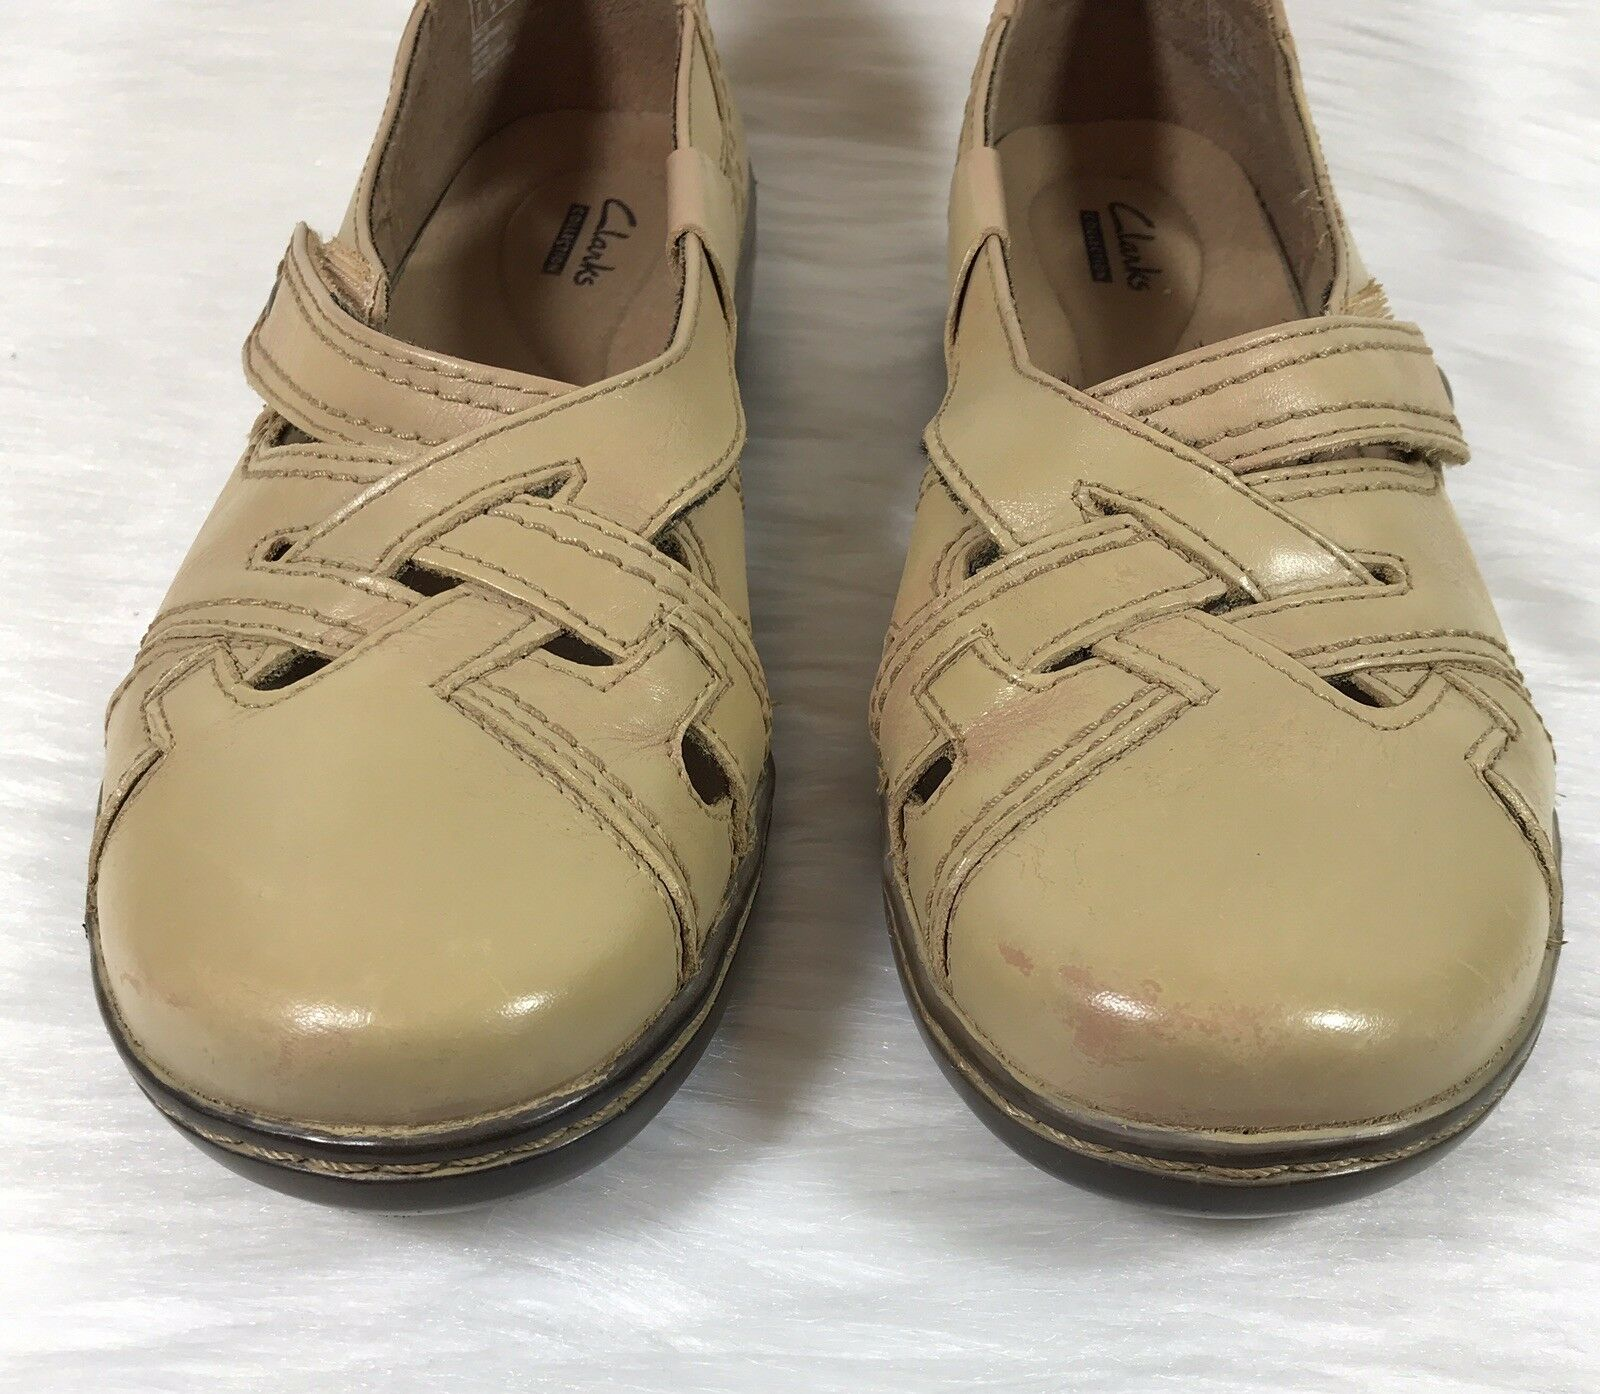 Clarks Clarks Clarks Collection Women's Flat shoes Beige Leather Cut out Size 9.5 M 46f7dc